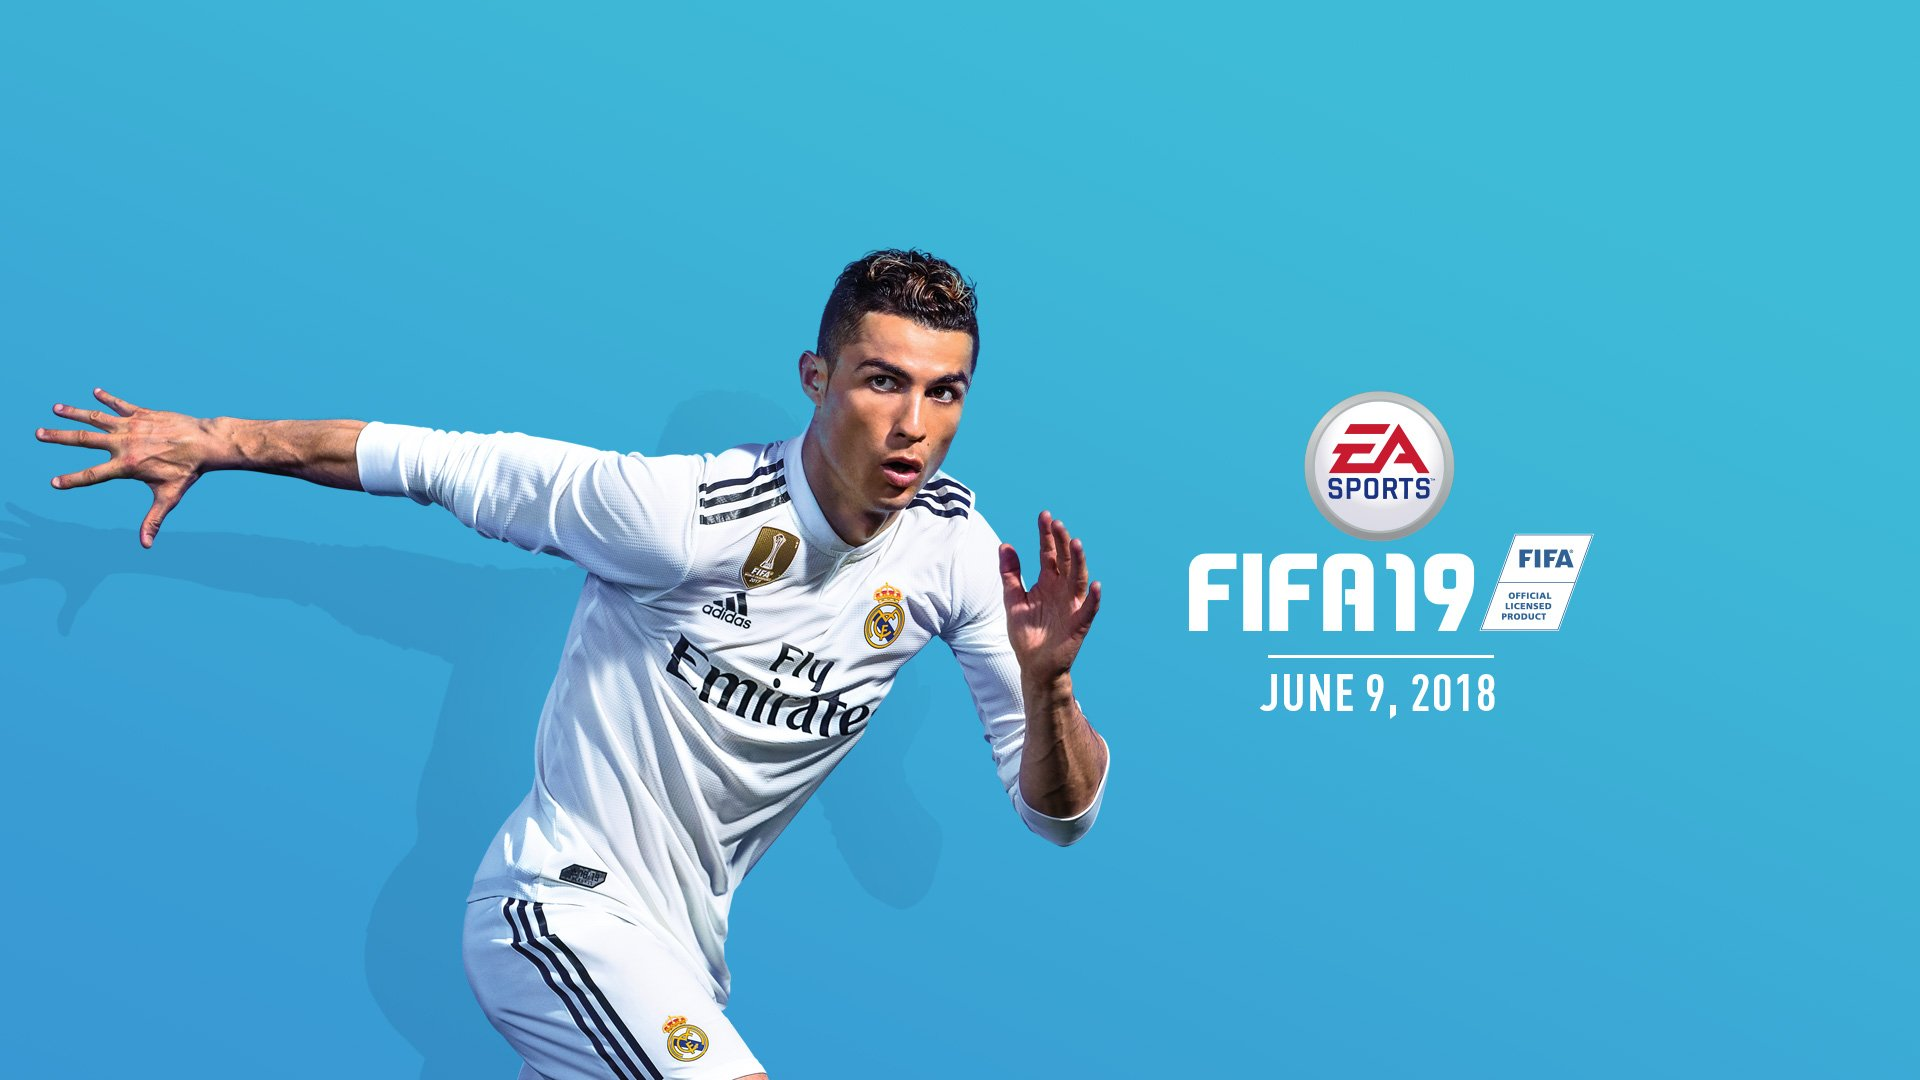 fifa 19 champions league mit einem trailer best tigt. Black Bedroom Furniture Sets. Home Design Ideas